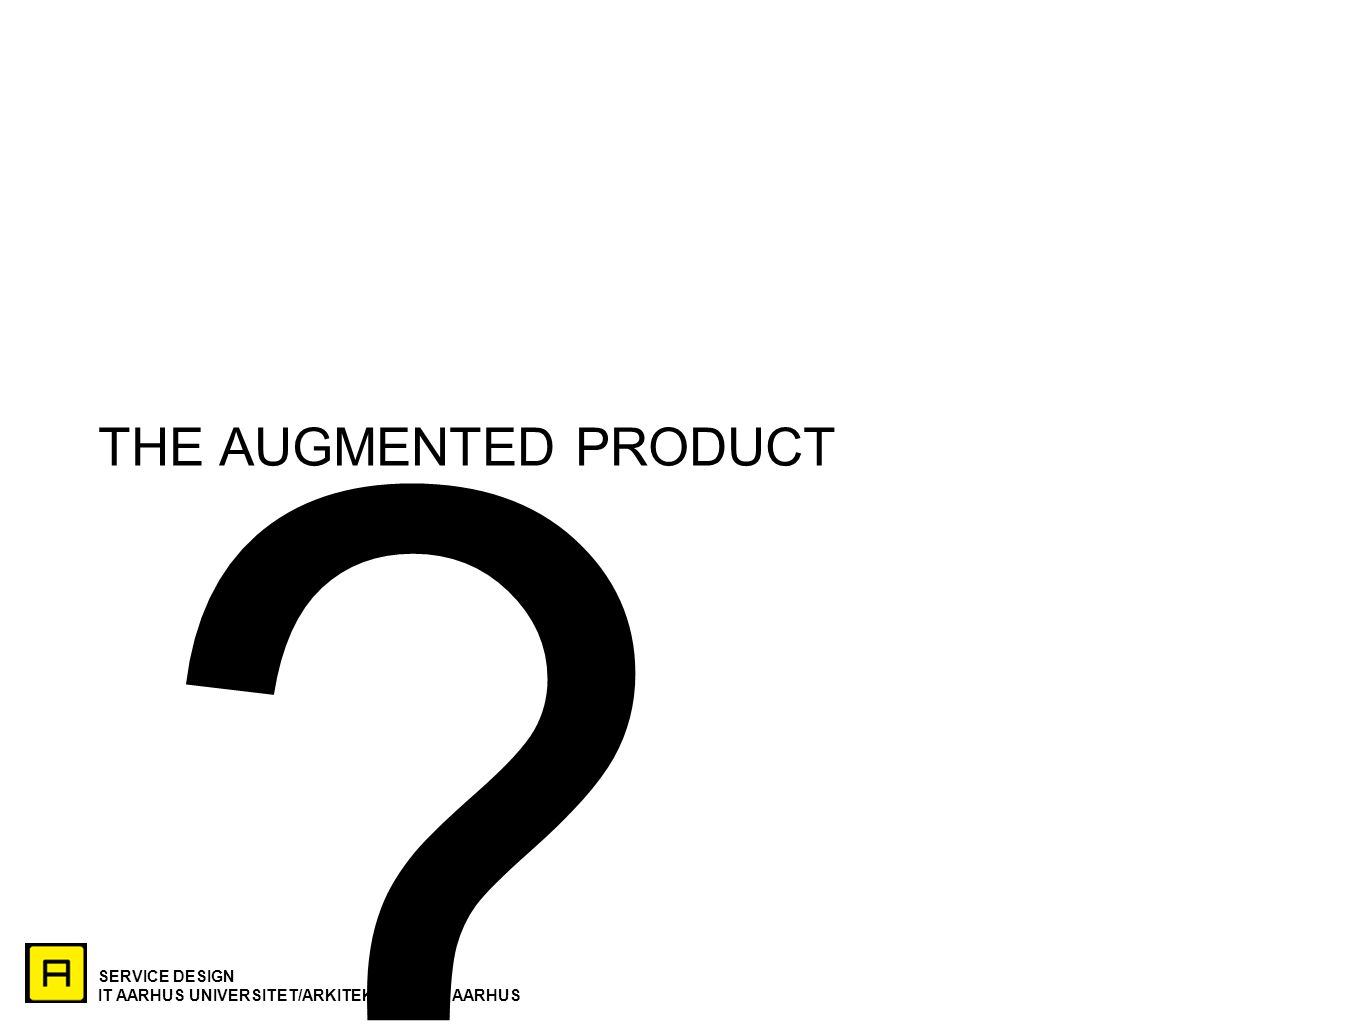 THE AUGMENTED PRODUCT